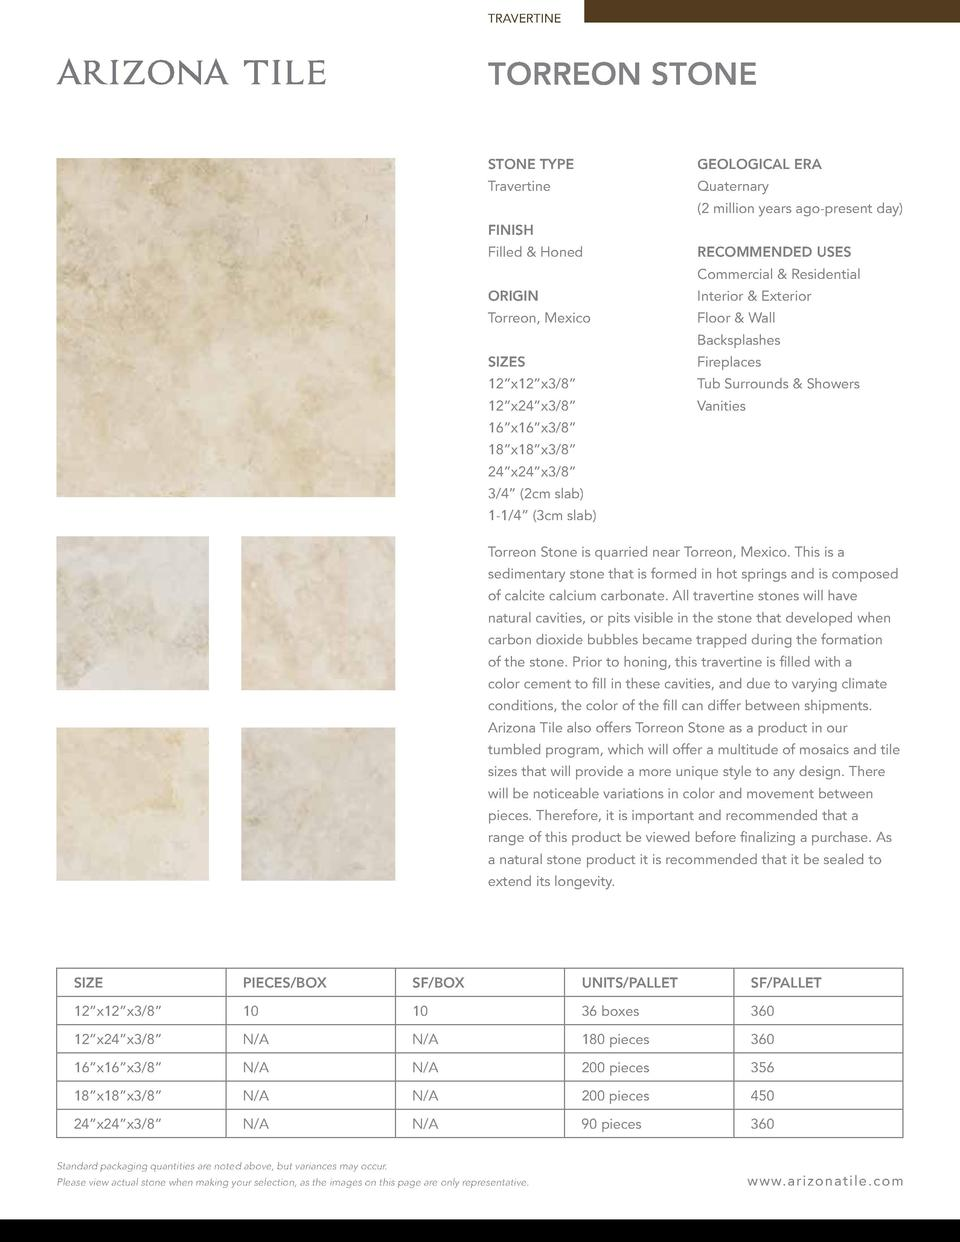 TRAVERTINE  TORREON STONE STONE TYPE  GEOLOGICAL ERA  Travertine  Quaternary  2 million years ago-present day   FINISH Fil...